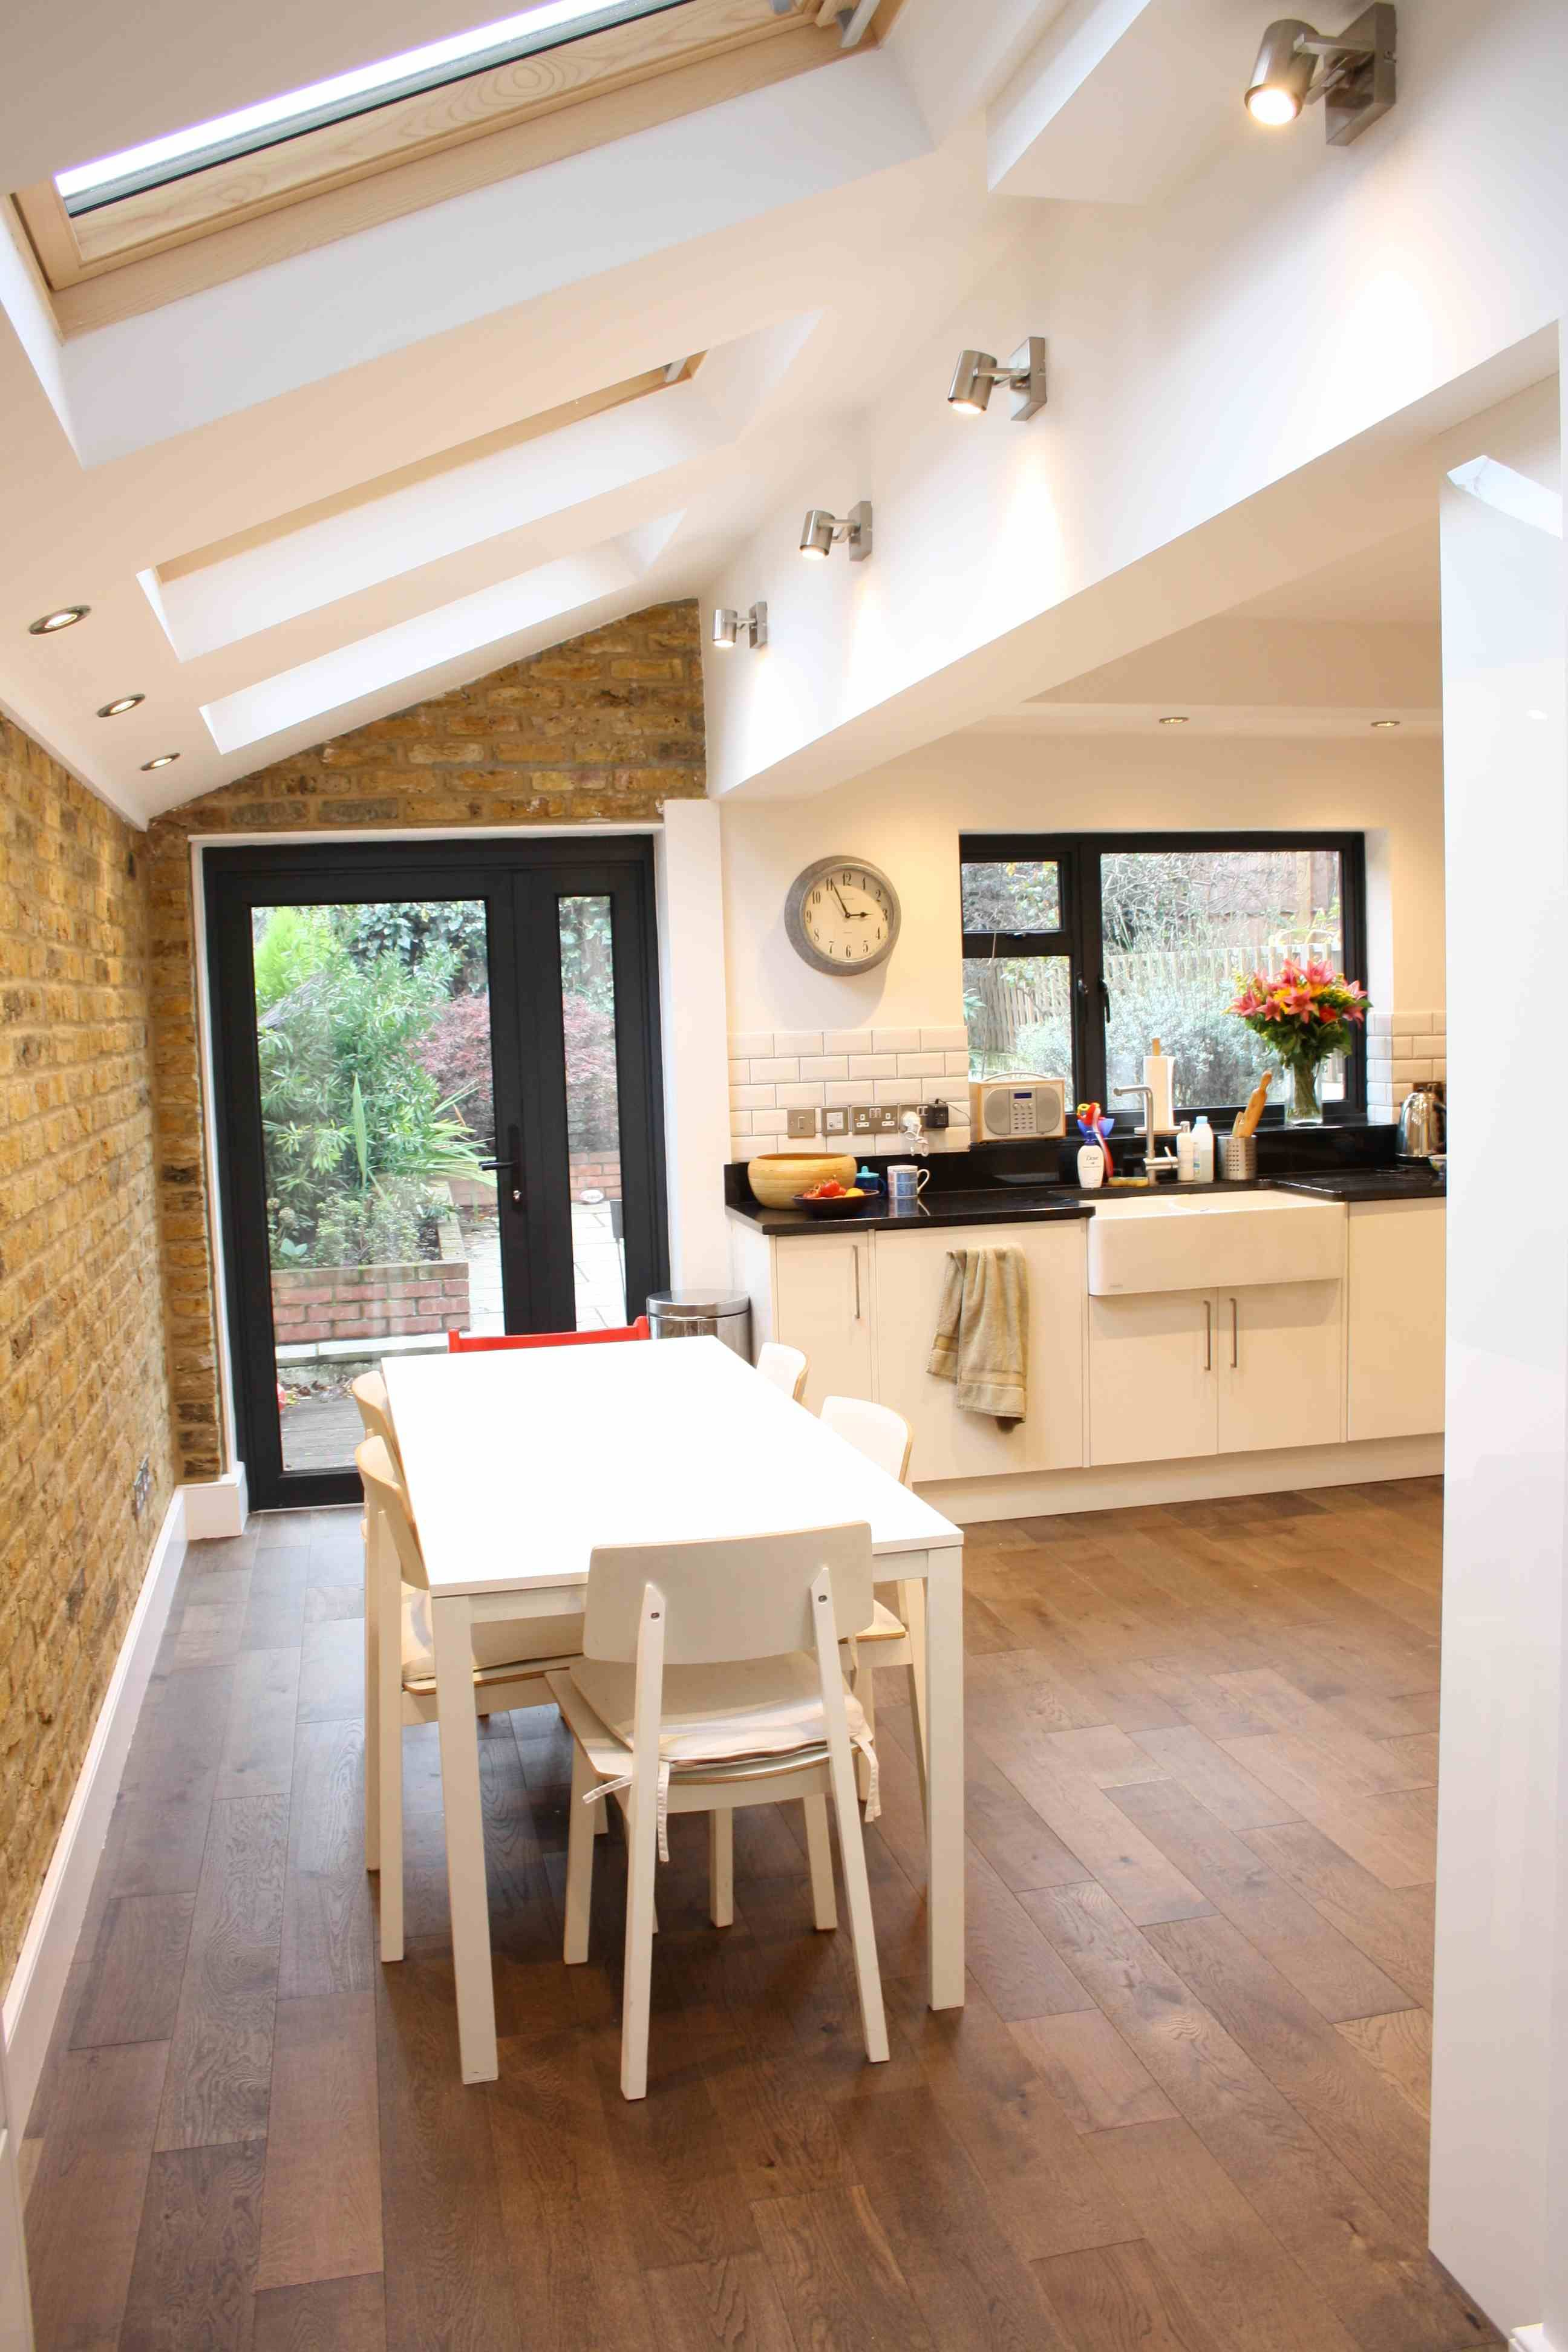 Side return kitchen extension with exposed brick work built by simply extend londons kitchen extension specialist